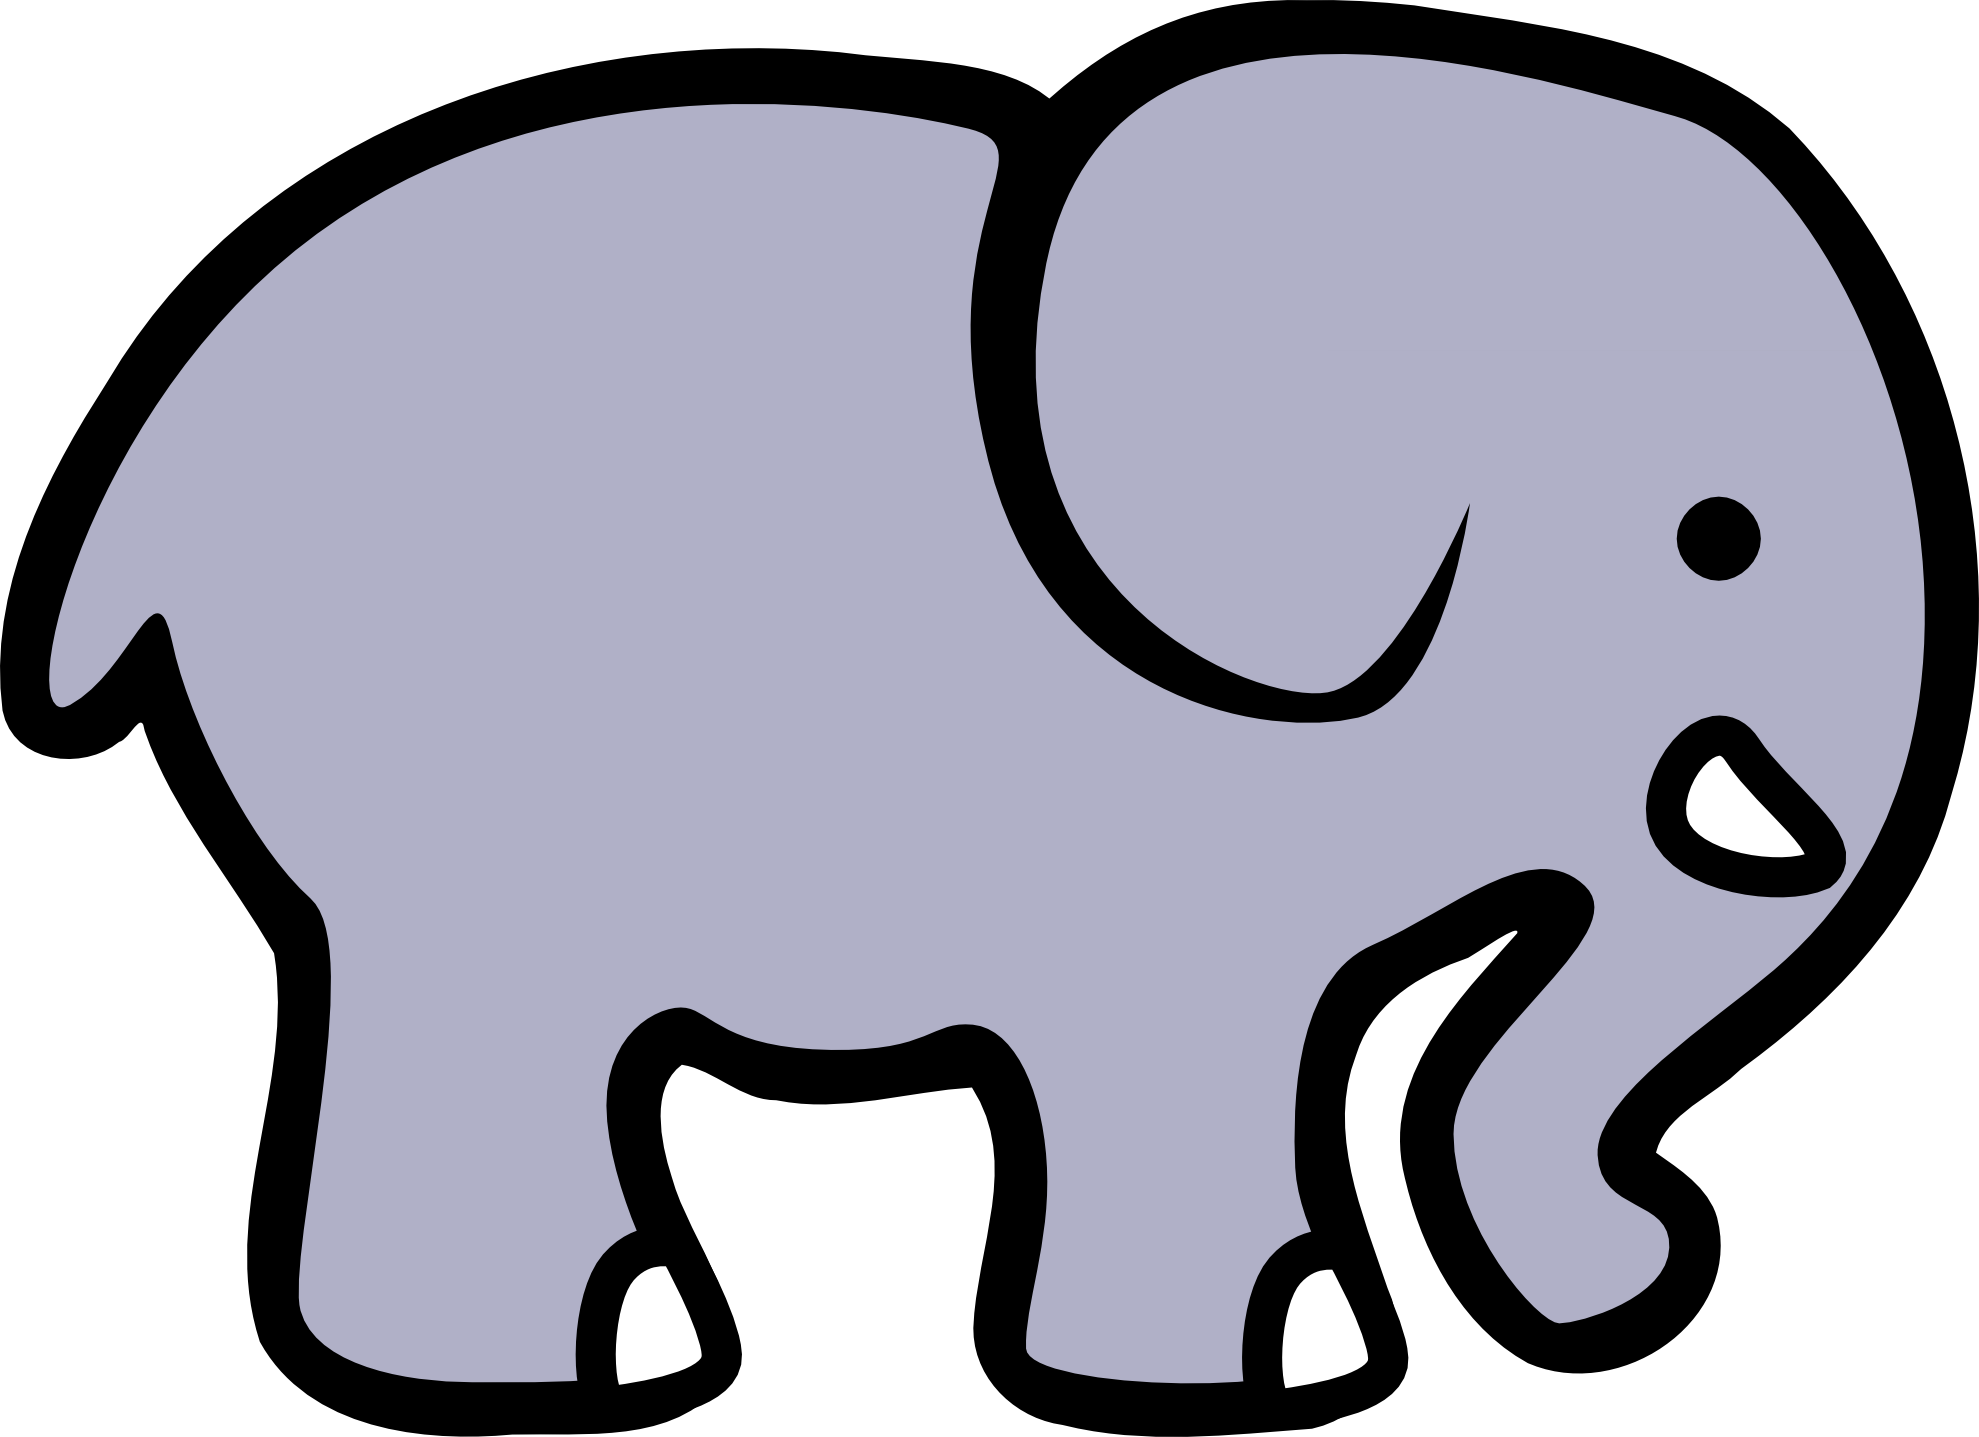 Indian football clipart image free stock clipart elephant | Clipart image free stock